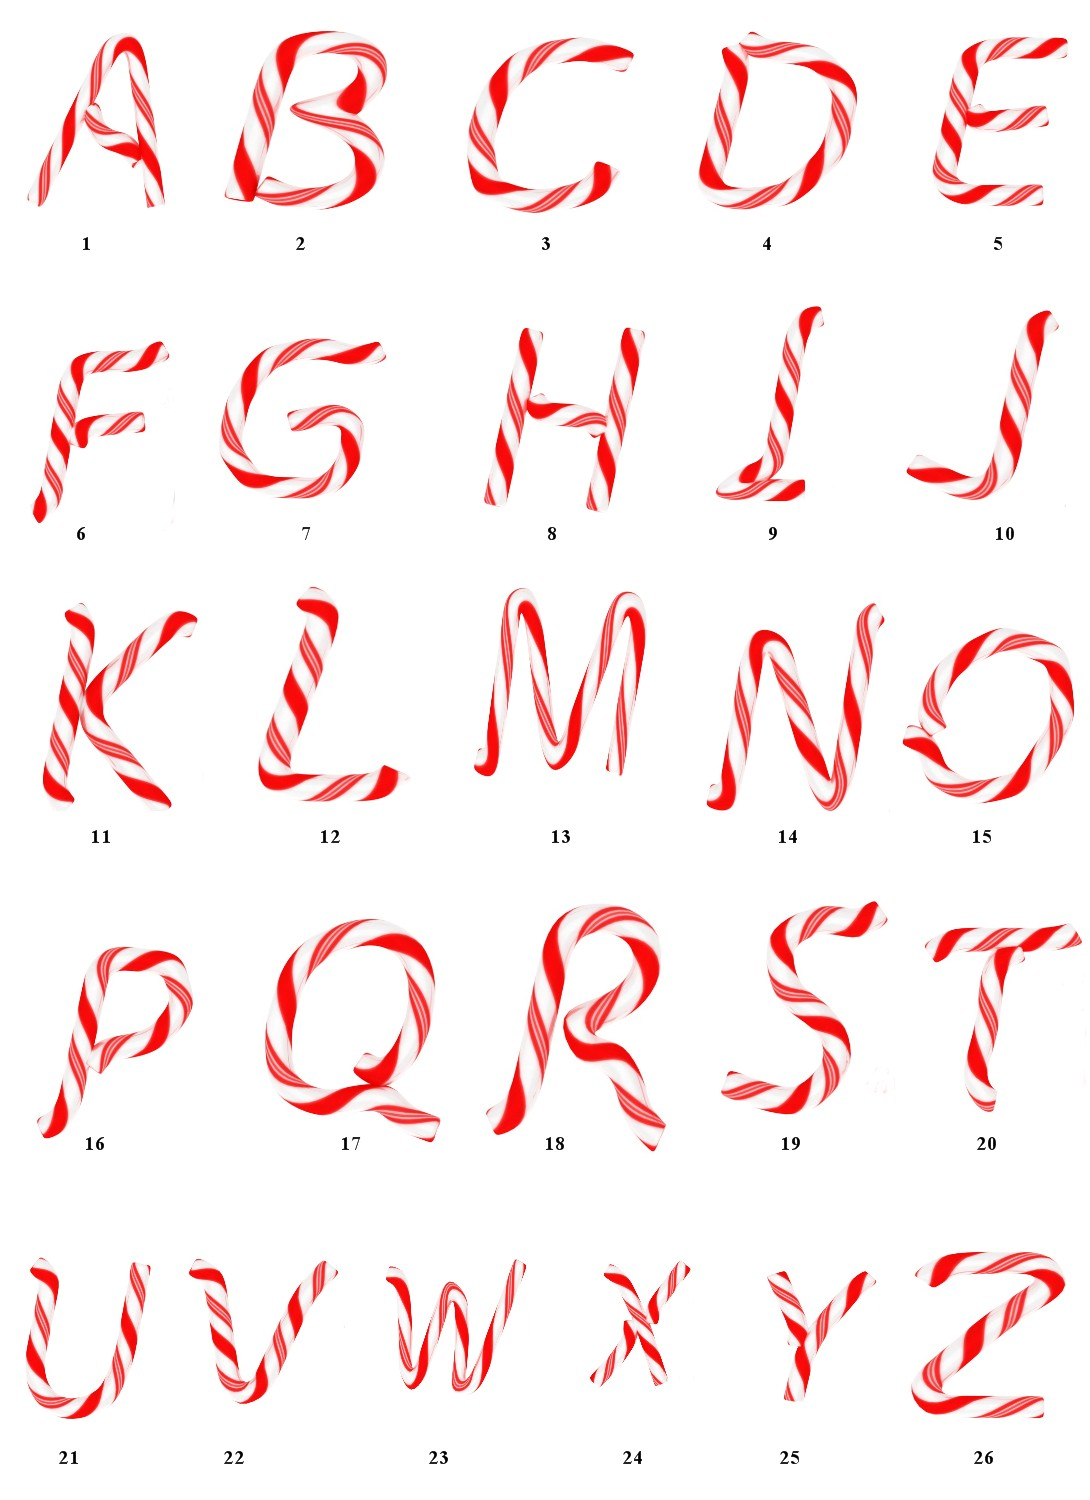 13 candy land letter font images free printable candy With candy cane alphabet letters